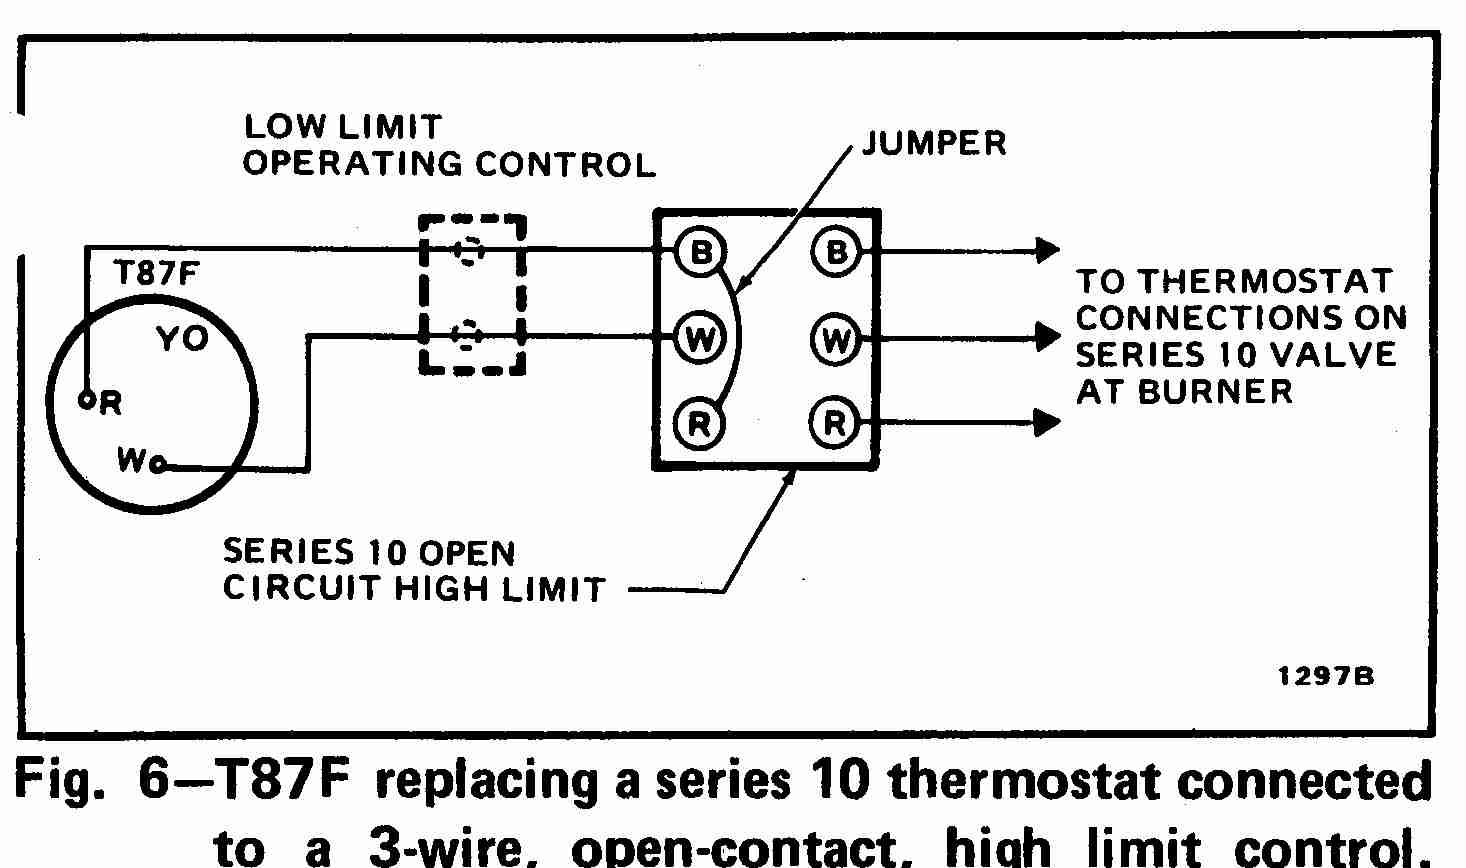 3 Wire Schematics Phase Wiring Image Diagram Diagrams Taylor Dunn Room Thermostat For Hvac Systems High Limit Honeywell T87f